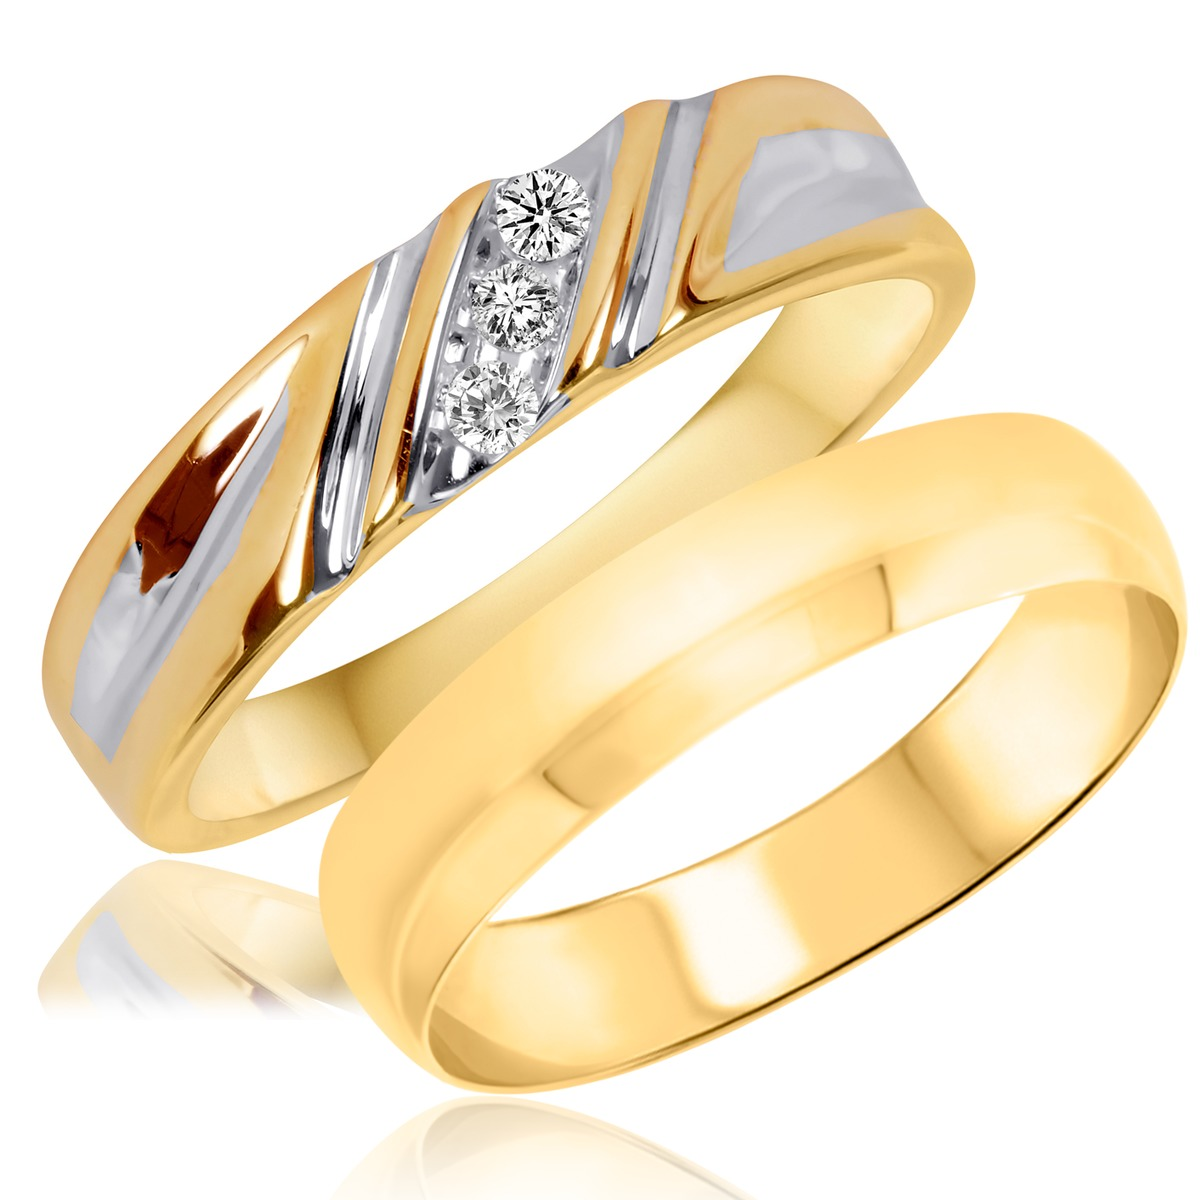 1/15 Carat T.W. Round Cut Diamond His and Hers Wedding Band Set 10K Yellow Gold